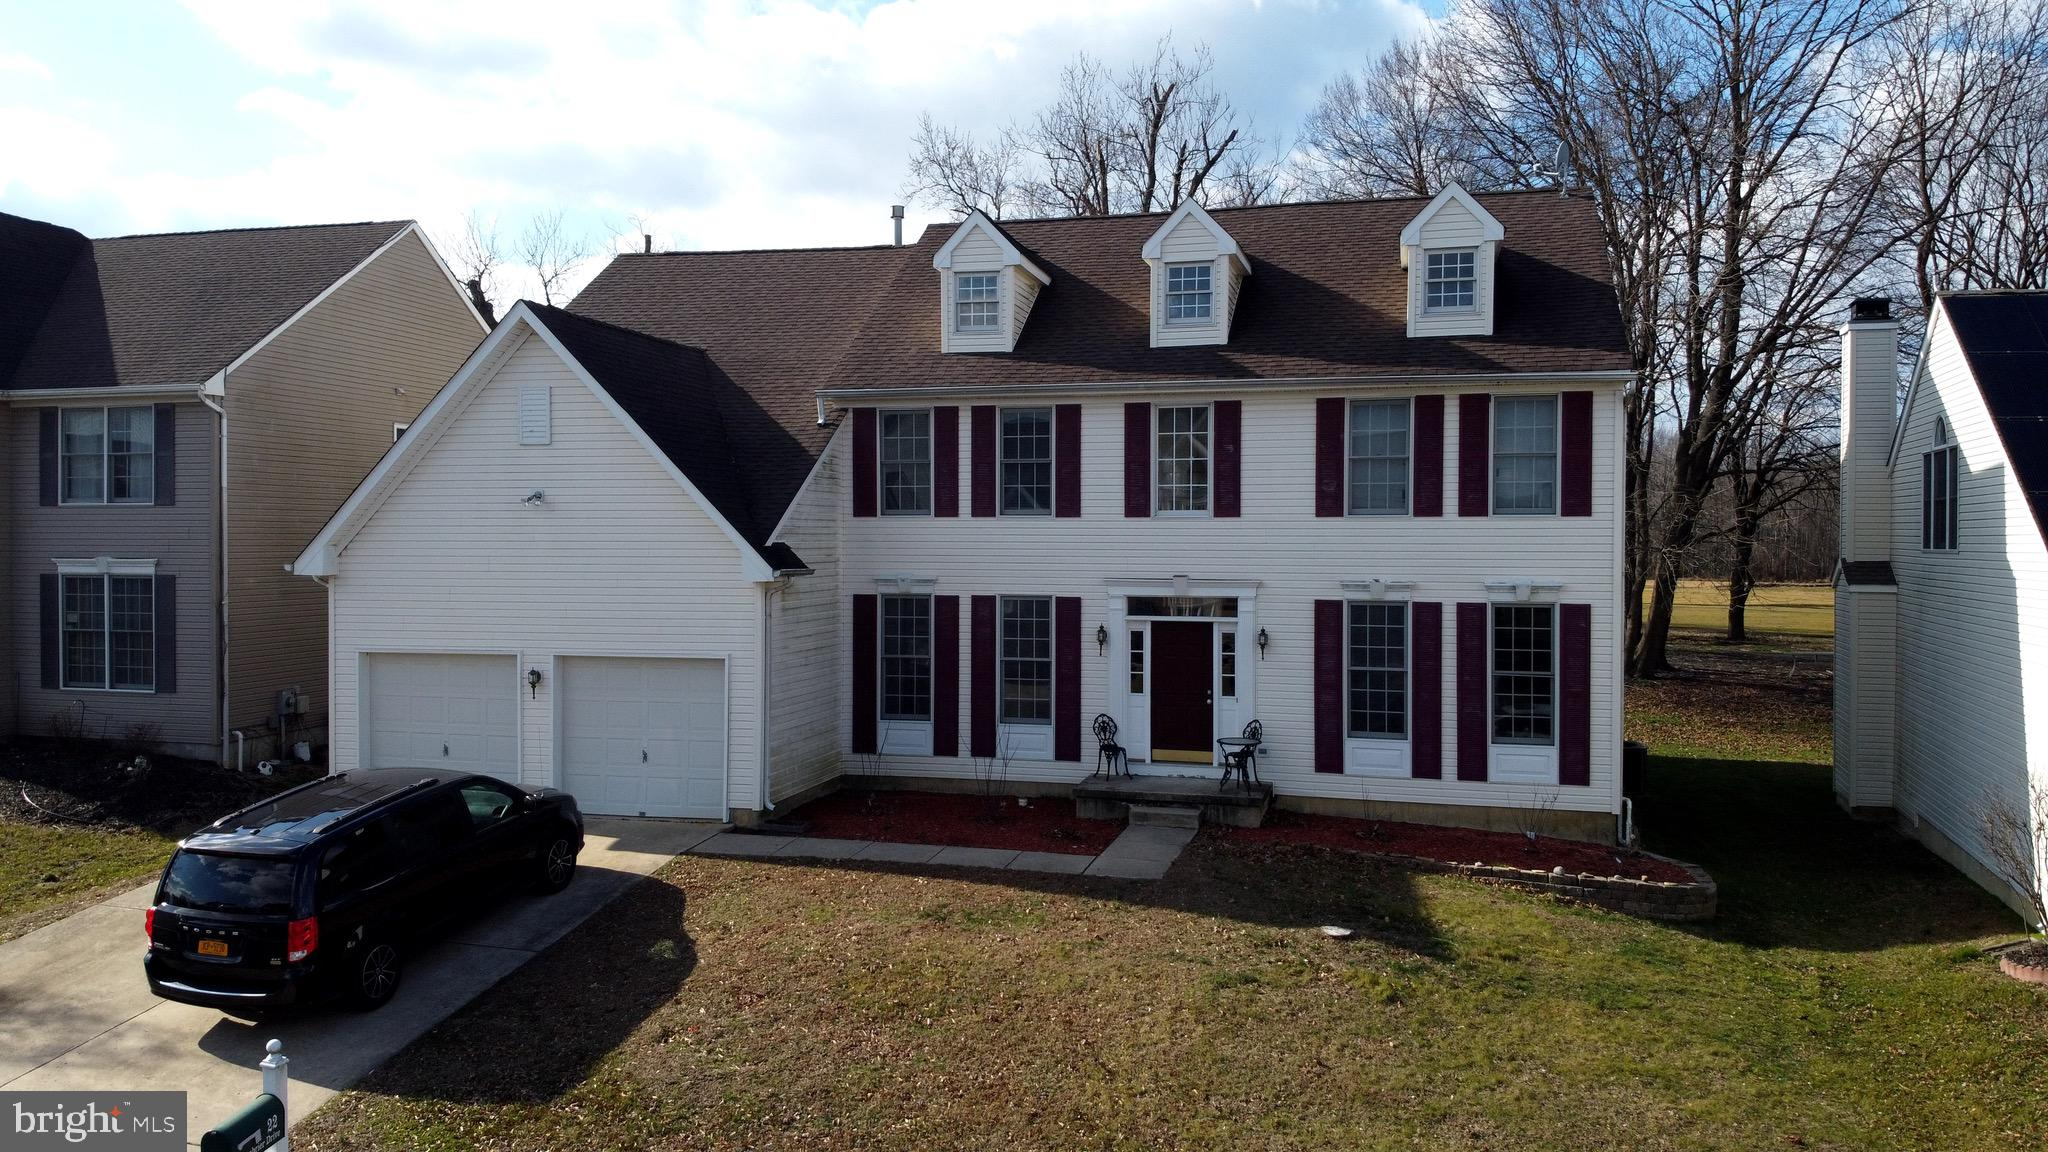 22 Greenbrier Drive, Mount Holly, NJ 08060